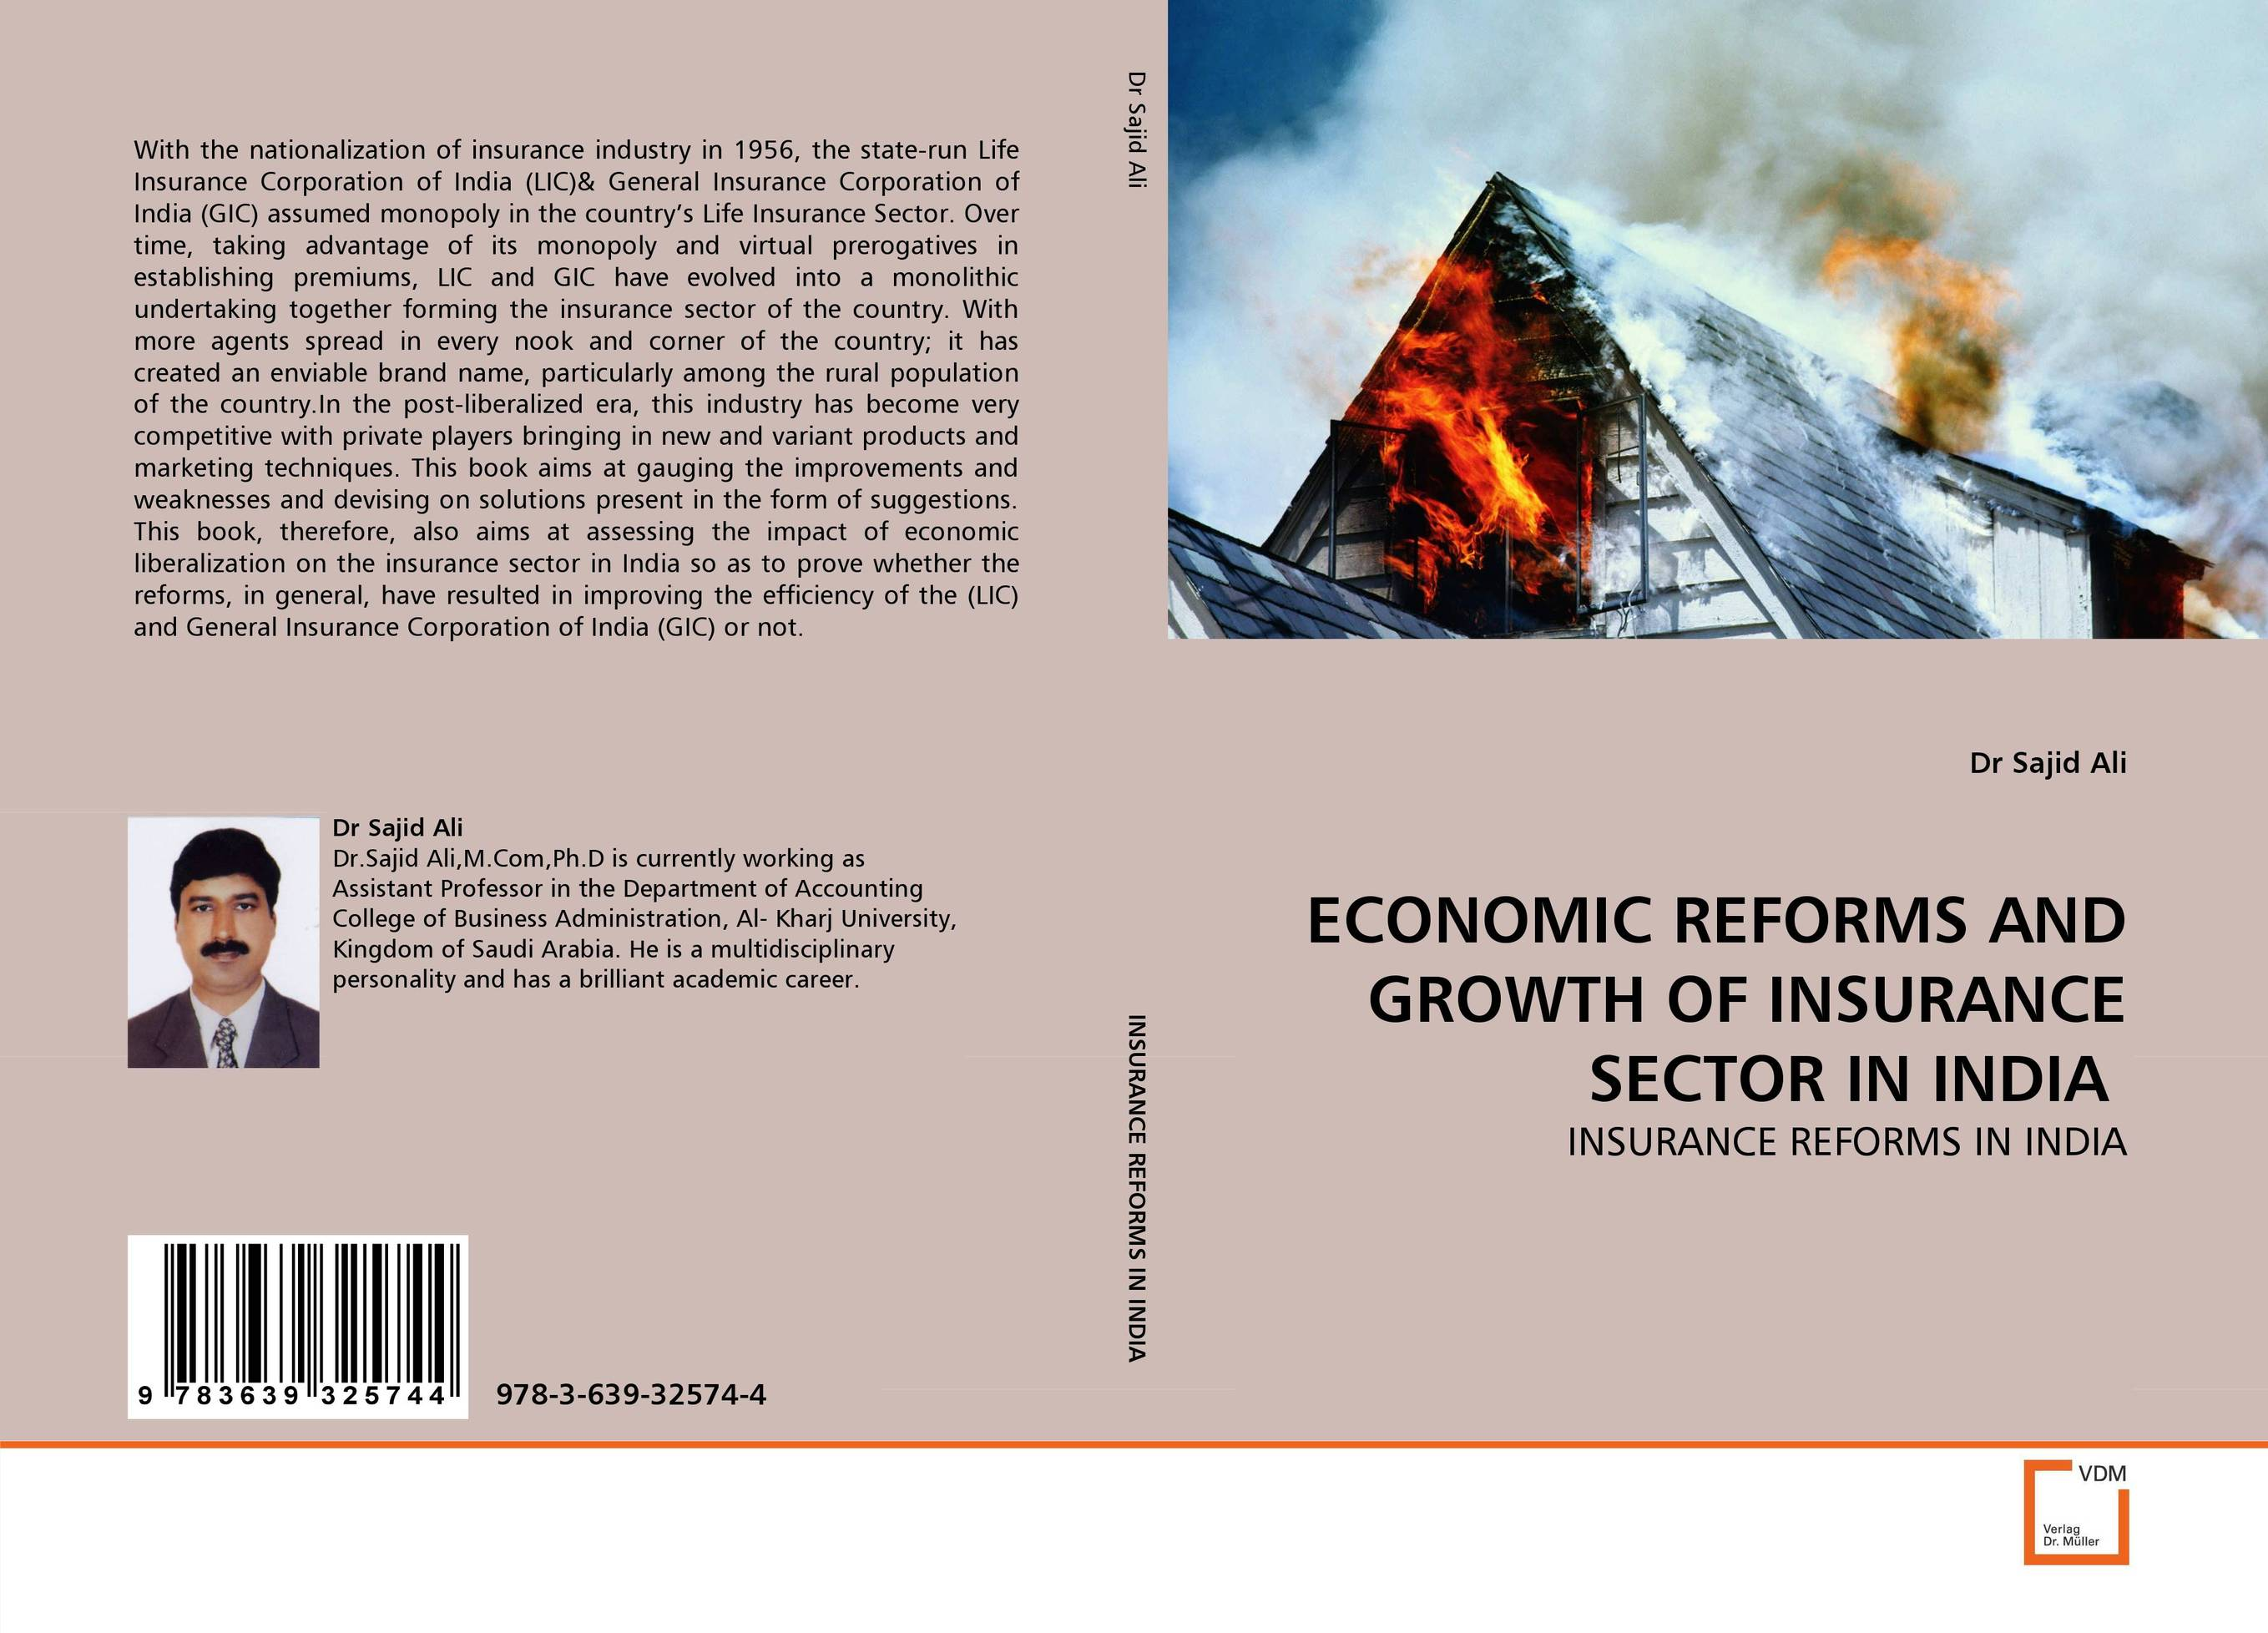 ECONOMIC REFORMS AND GROWTH OF INSURANCE SECTOR IN INDIA ? economic reforms and growth of insurance sector in india